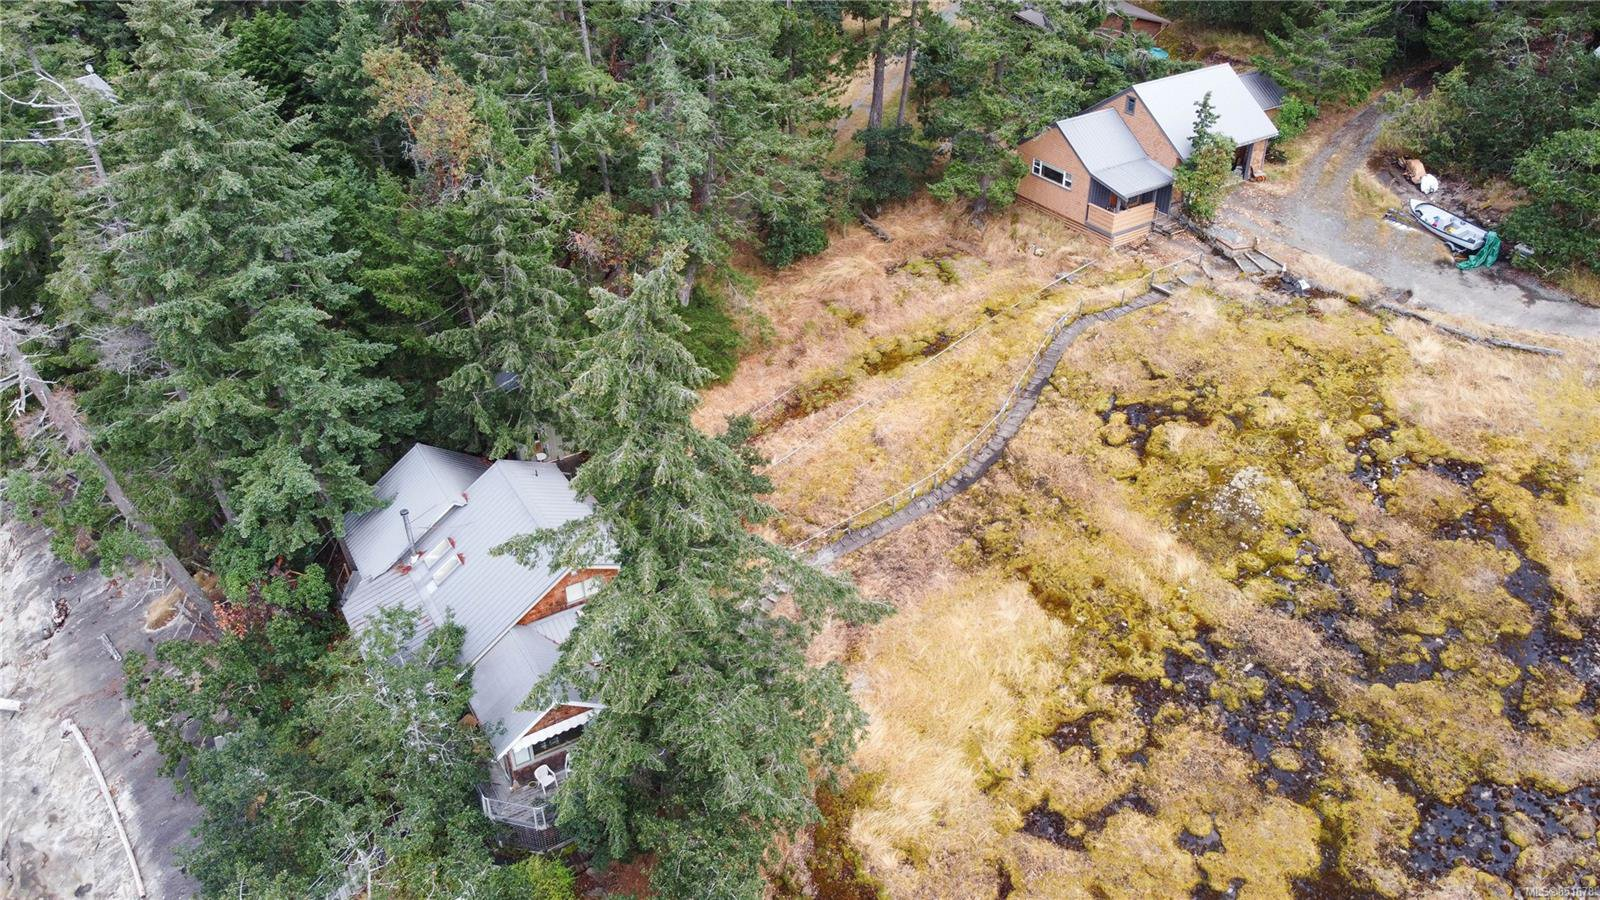 Photo 30: Photos: 262 Forbes Dr in : Isl Thetis Island House for sale (Islands)  : MLS®# 851678